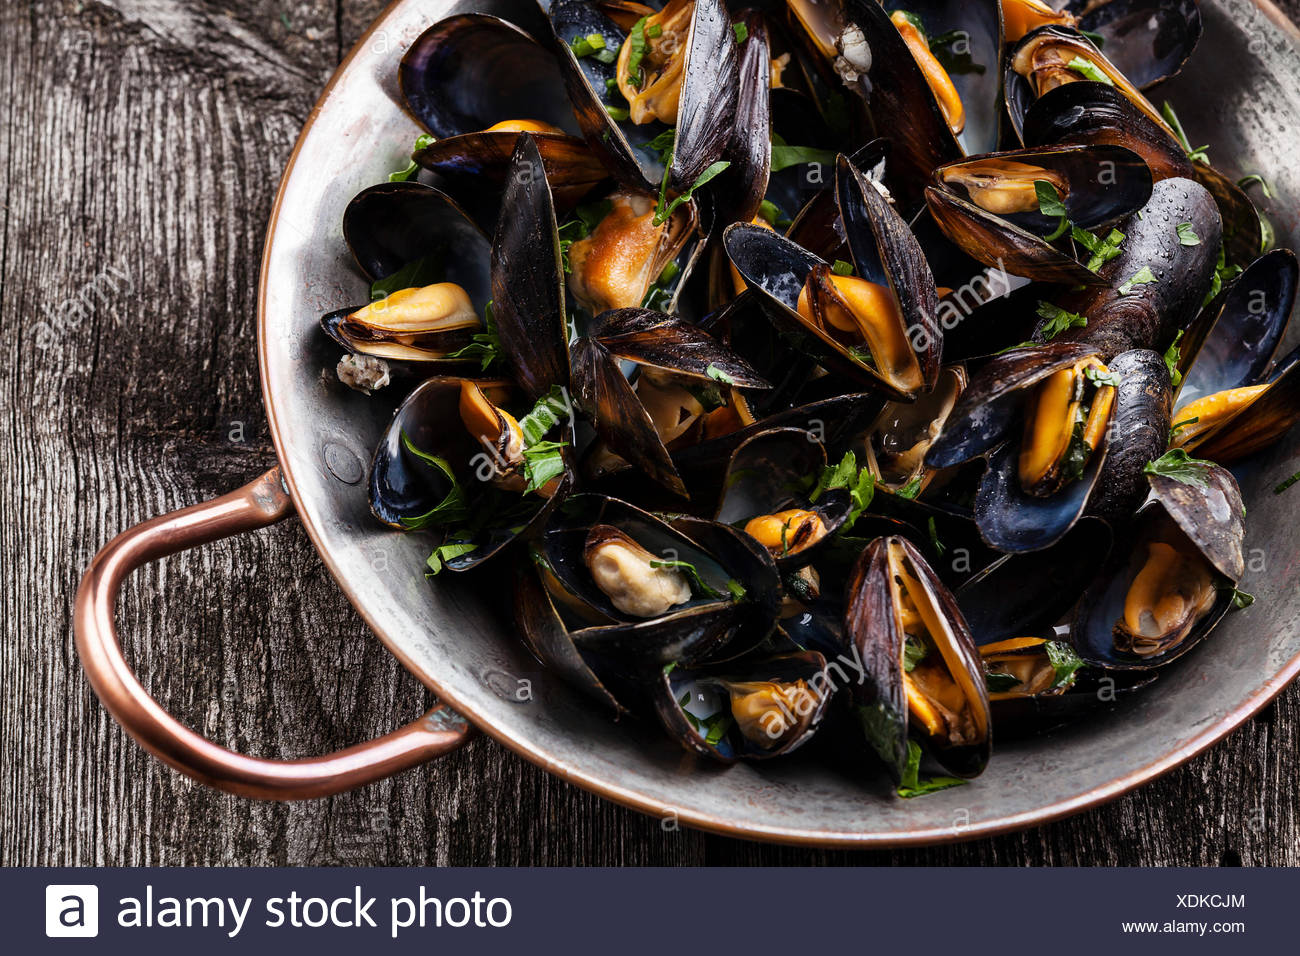 Boiled mussels in copper cooking dish on dark wooden background close up Stock Photo